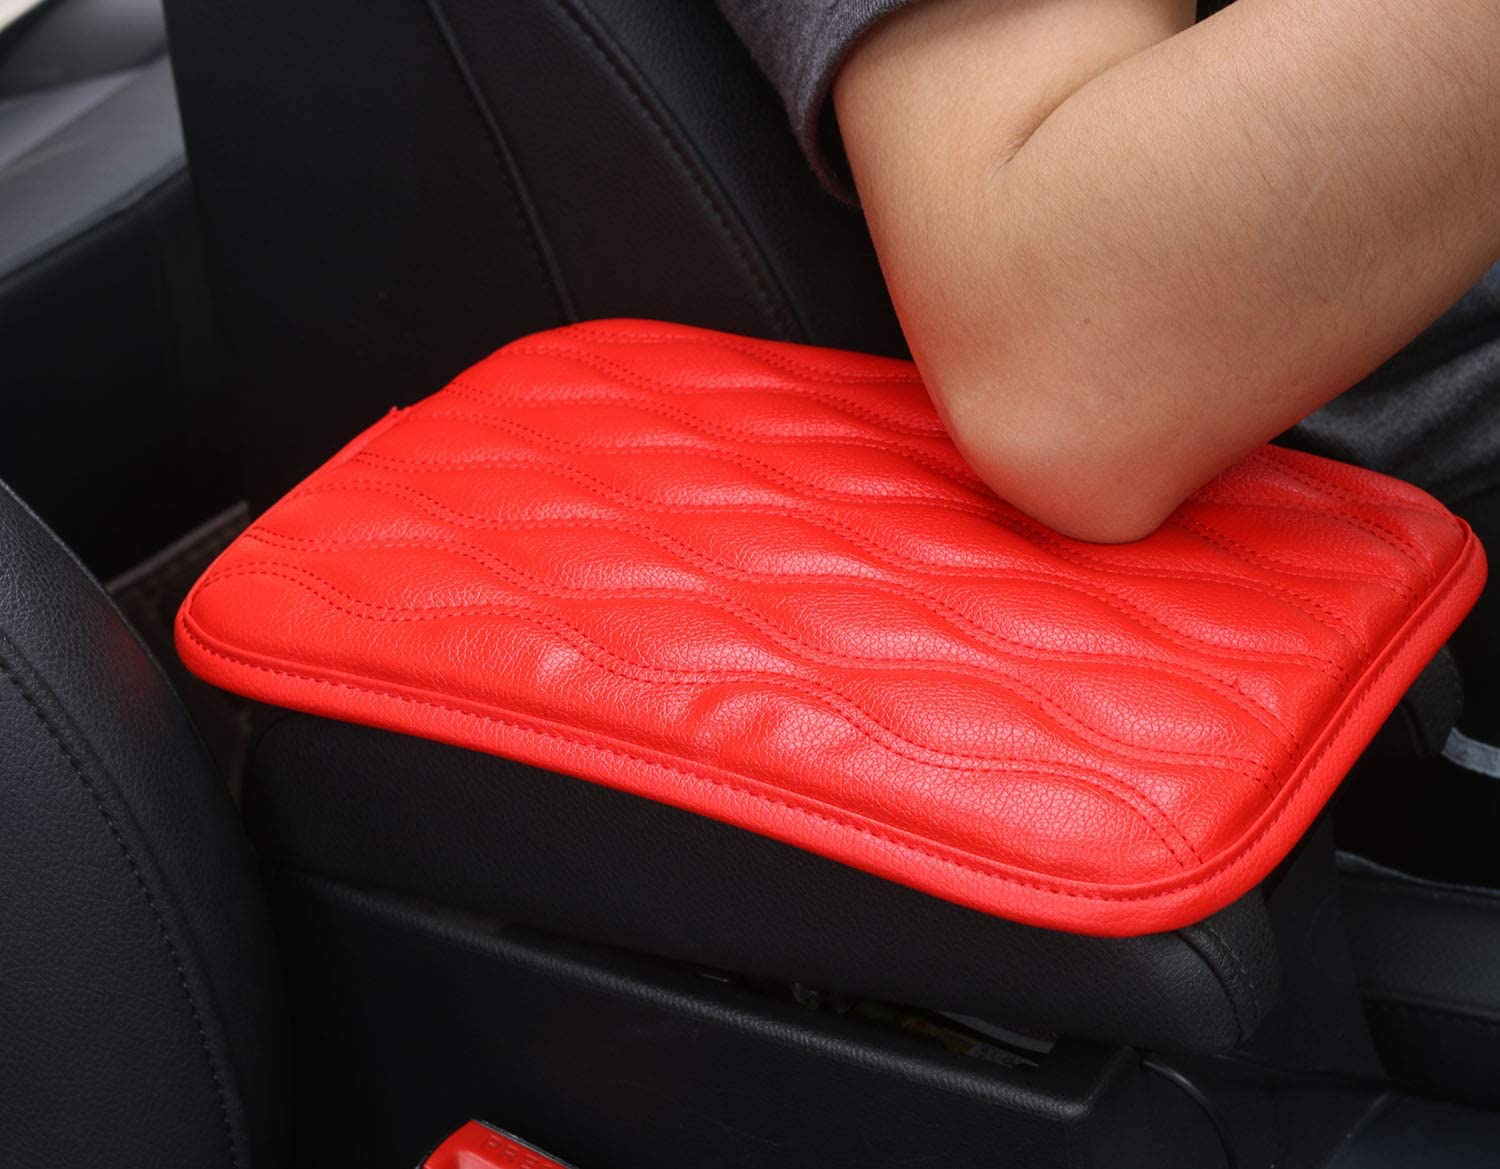 for SUV,Truck,Car Waterproof Armrest Cover Fit for Most Vehicle Auto Armrest Cover Car Armrest Seat Box Cover Mioloe Auto Center Console Pad,Universal Center Console Cover